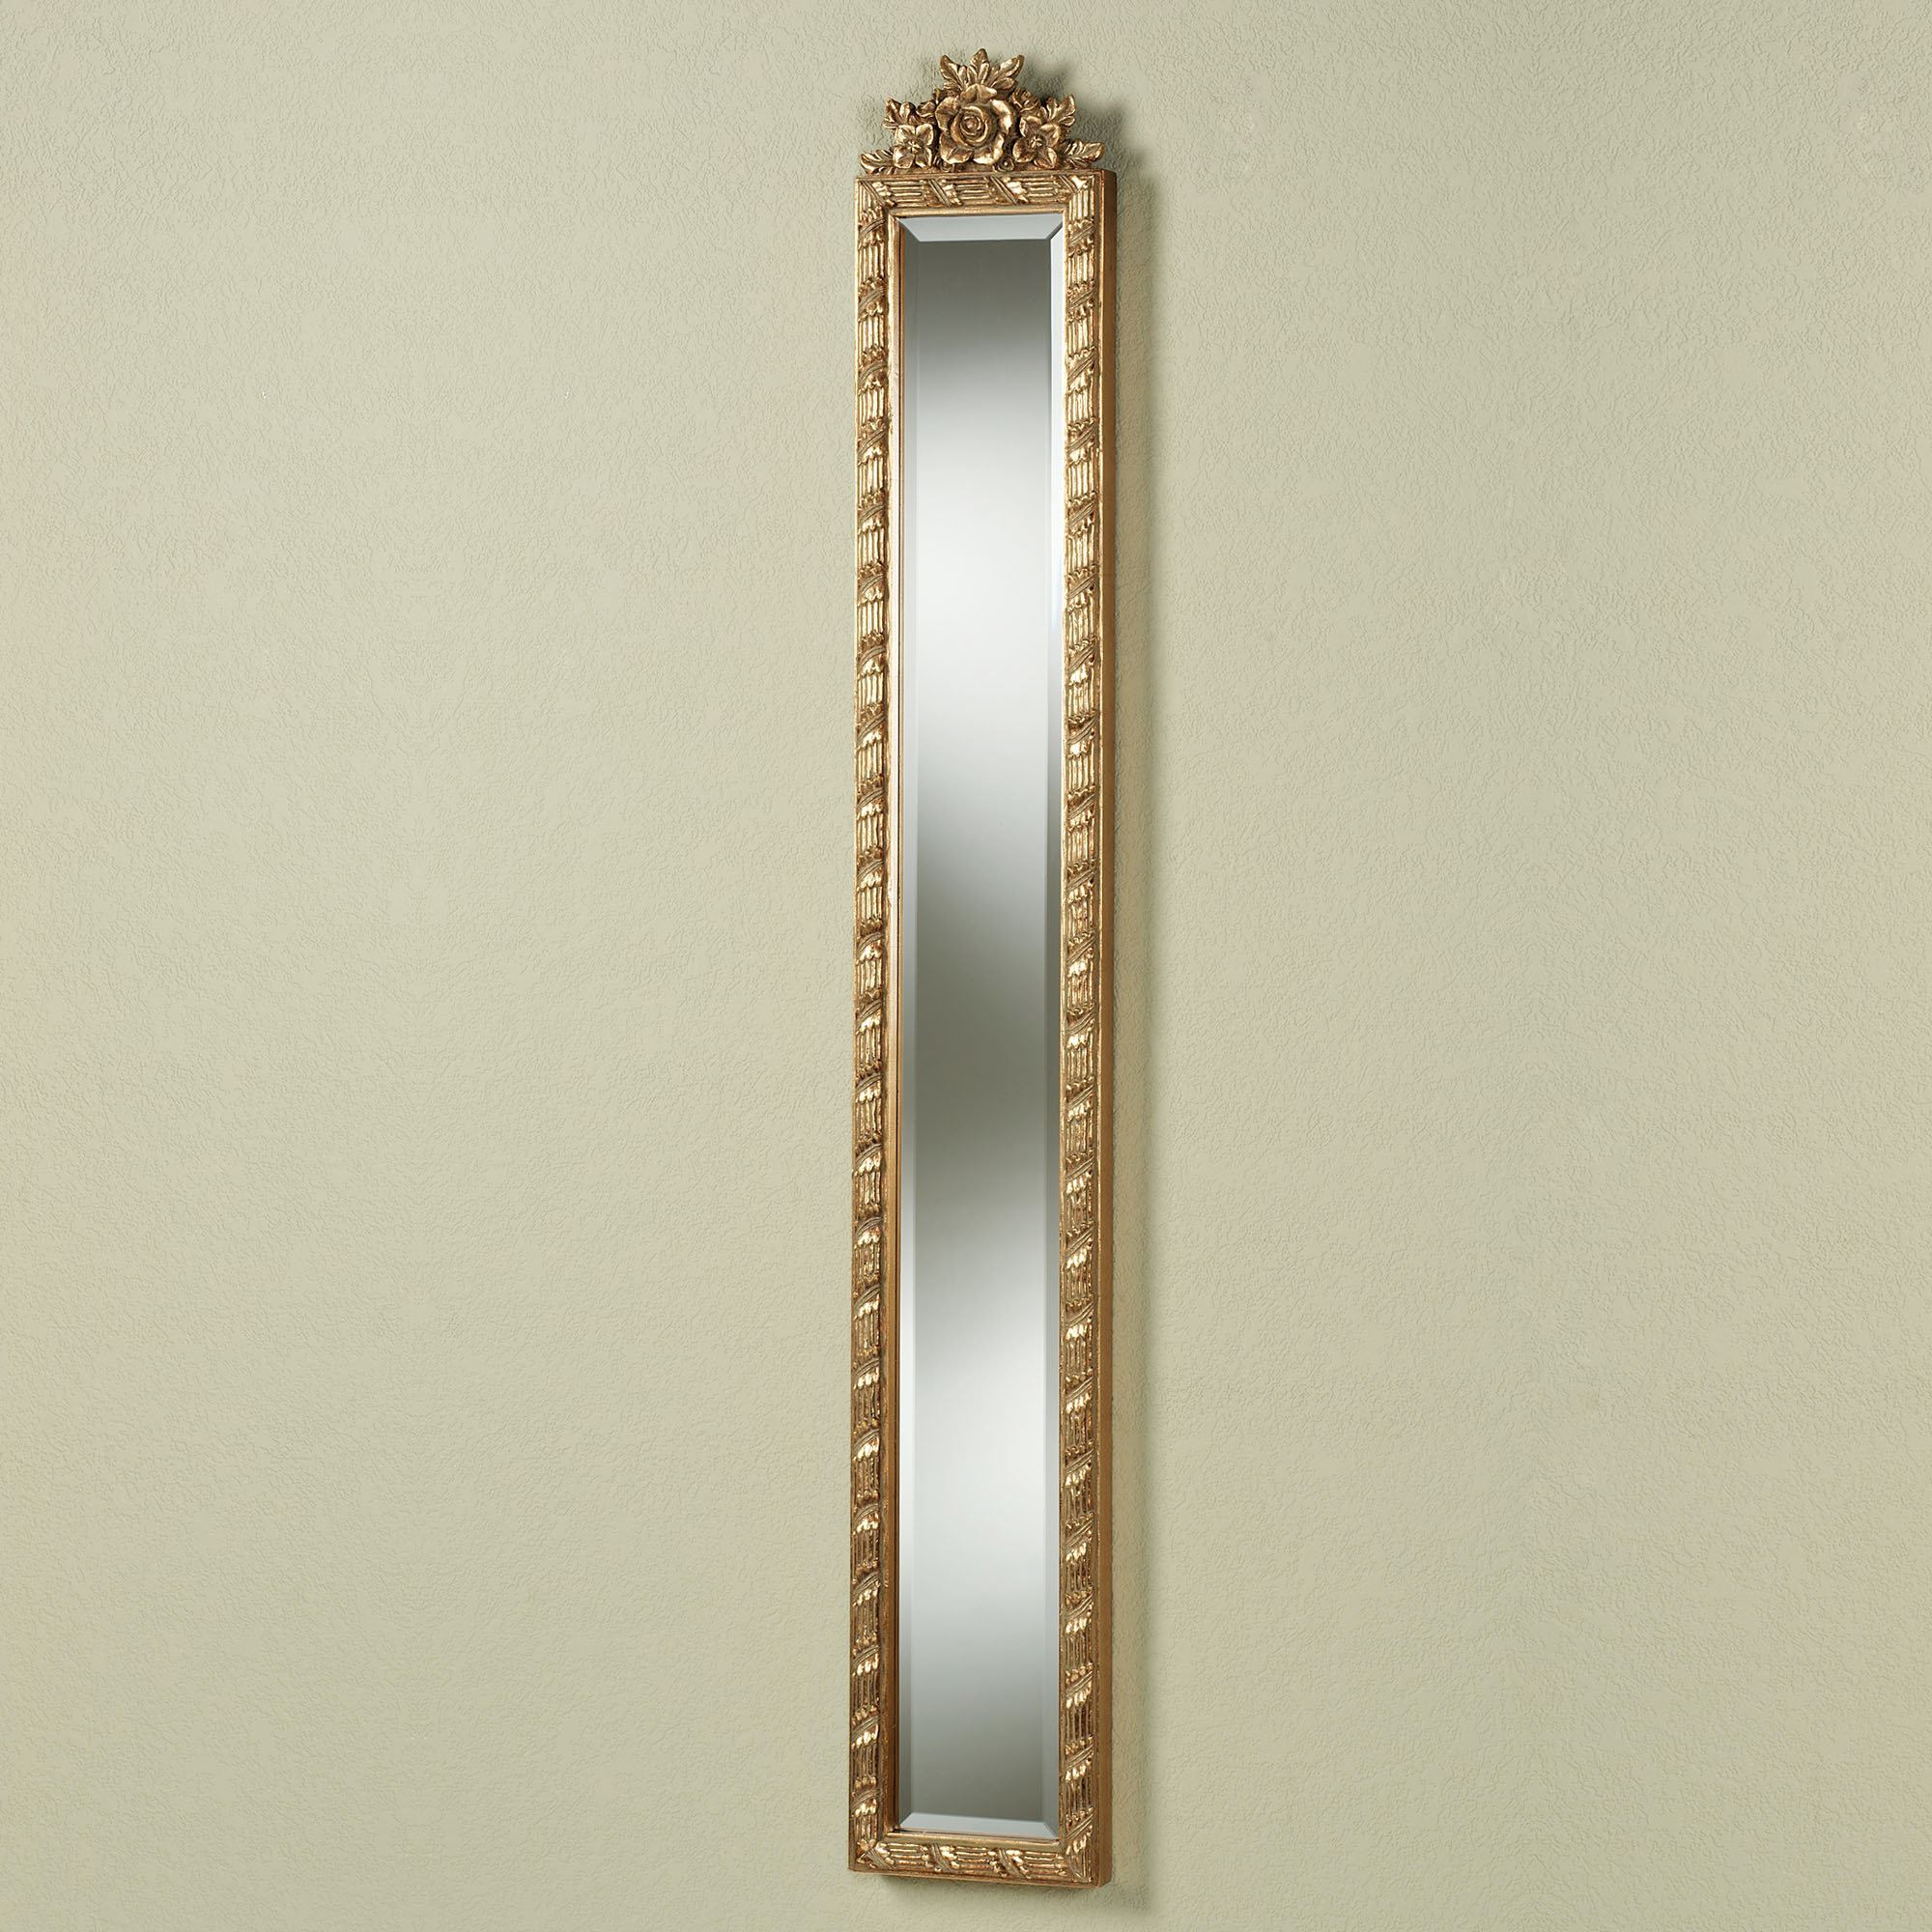 Giuliana Antique Gold Floral Wall Mirror Panel For Trendy Long Wall Mirrors (View 5 of 20)